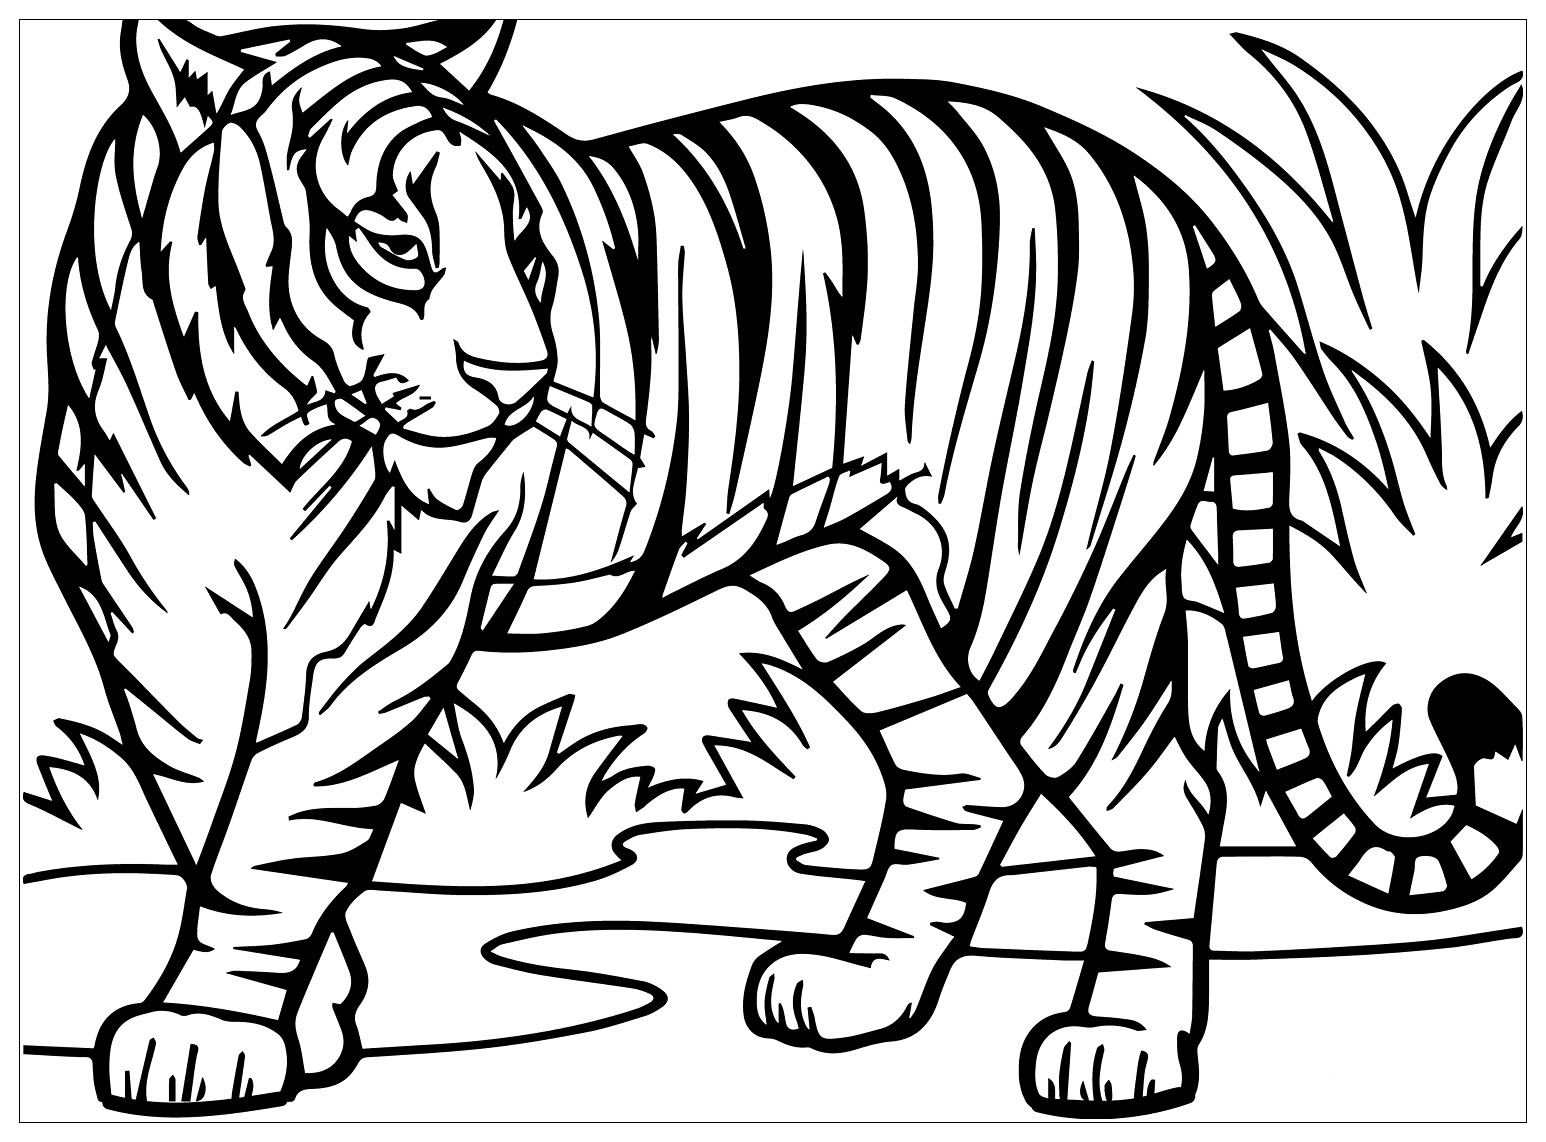 Beautiful Tigers coloring page to print and color